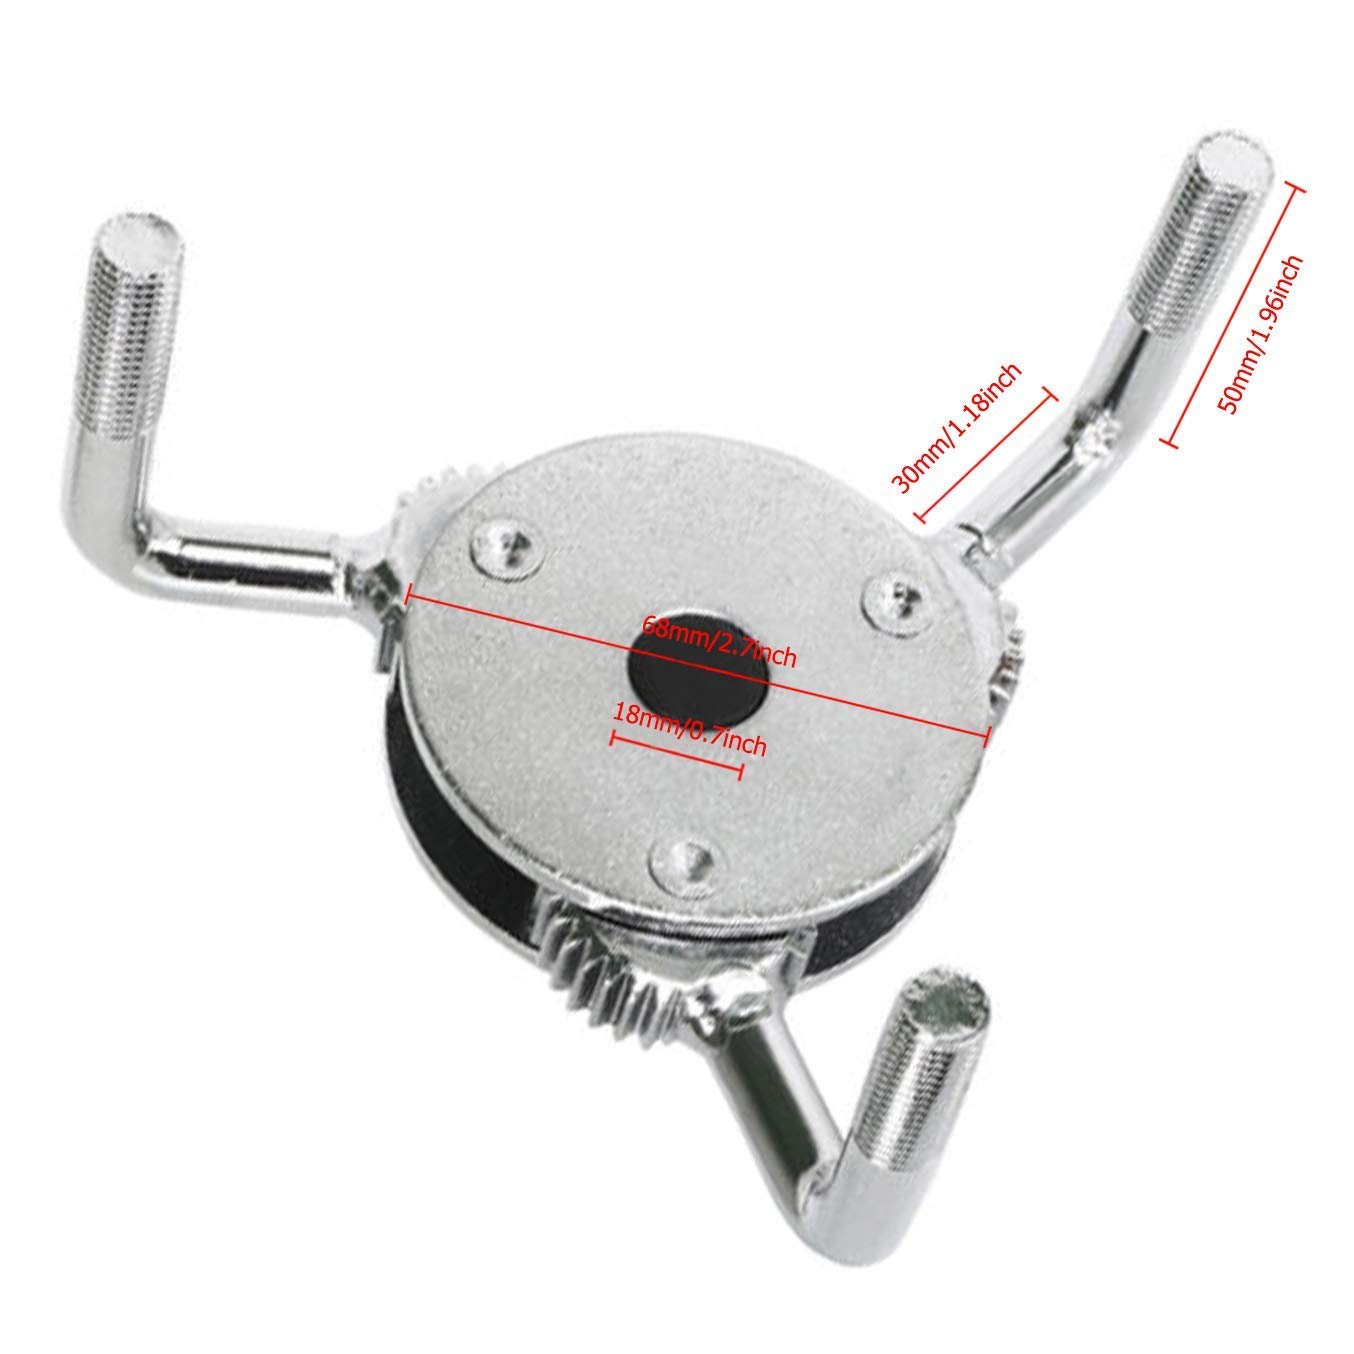 Wadoy 3 Jaw Oil Filter Wrench Round Car Removal Tool 3//8 Dr/&1//2 Adapter-Adjustable 3 Leg Claw 2 Way Oil Filter Claw Wrench